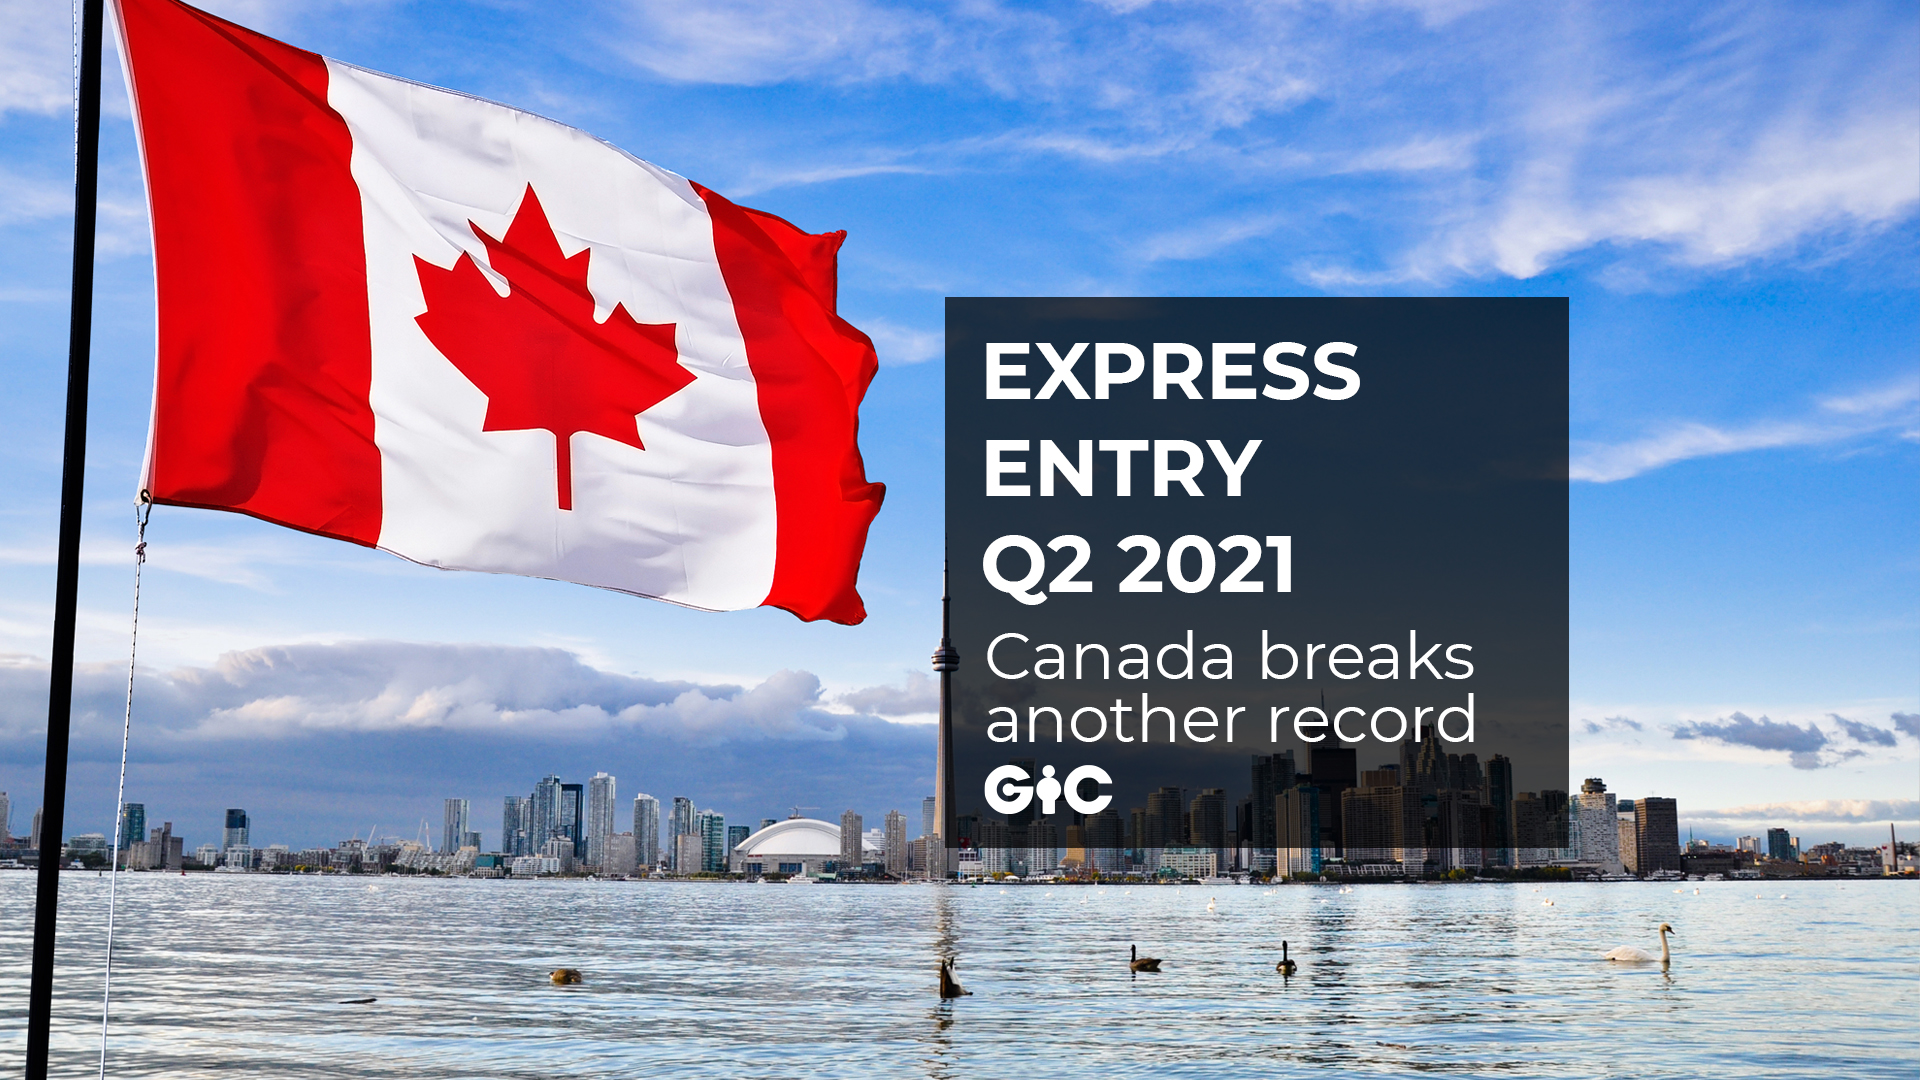 Express Entry Q2 2021 Canada breaks another record